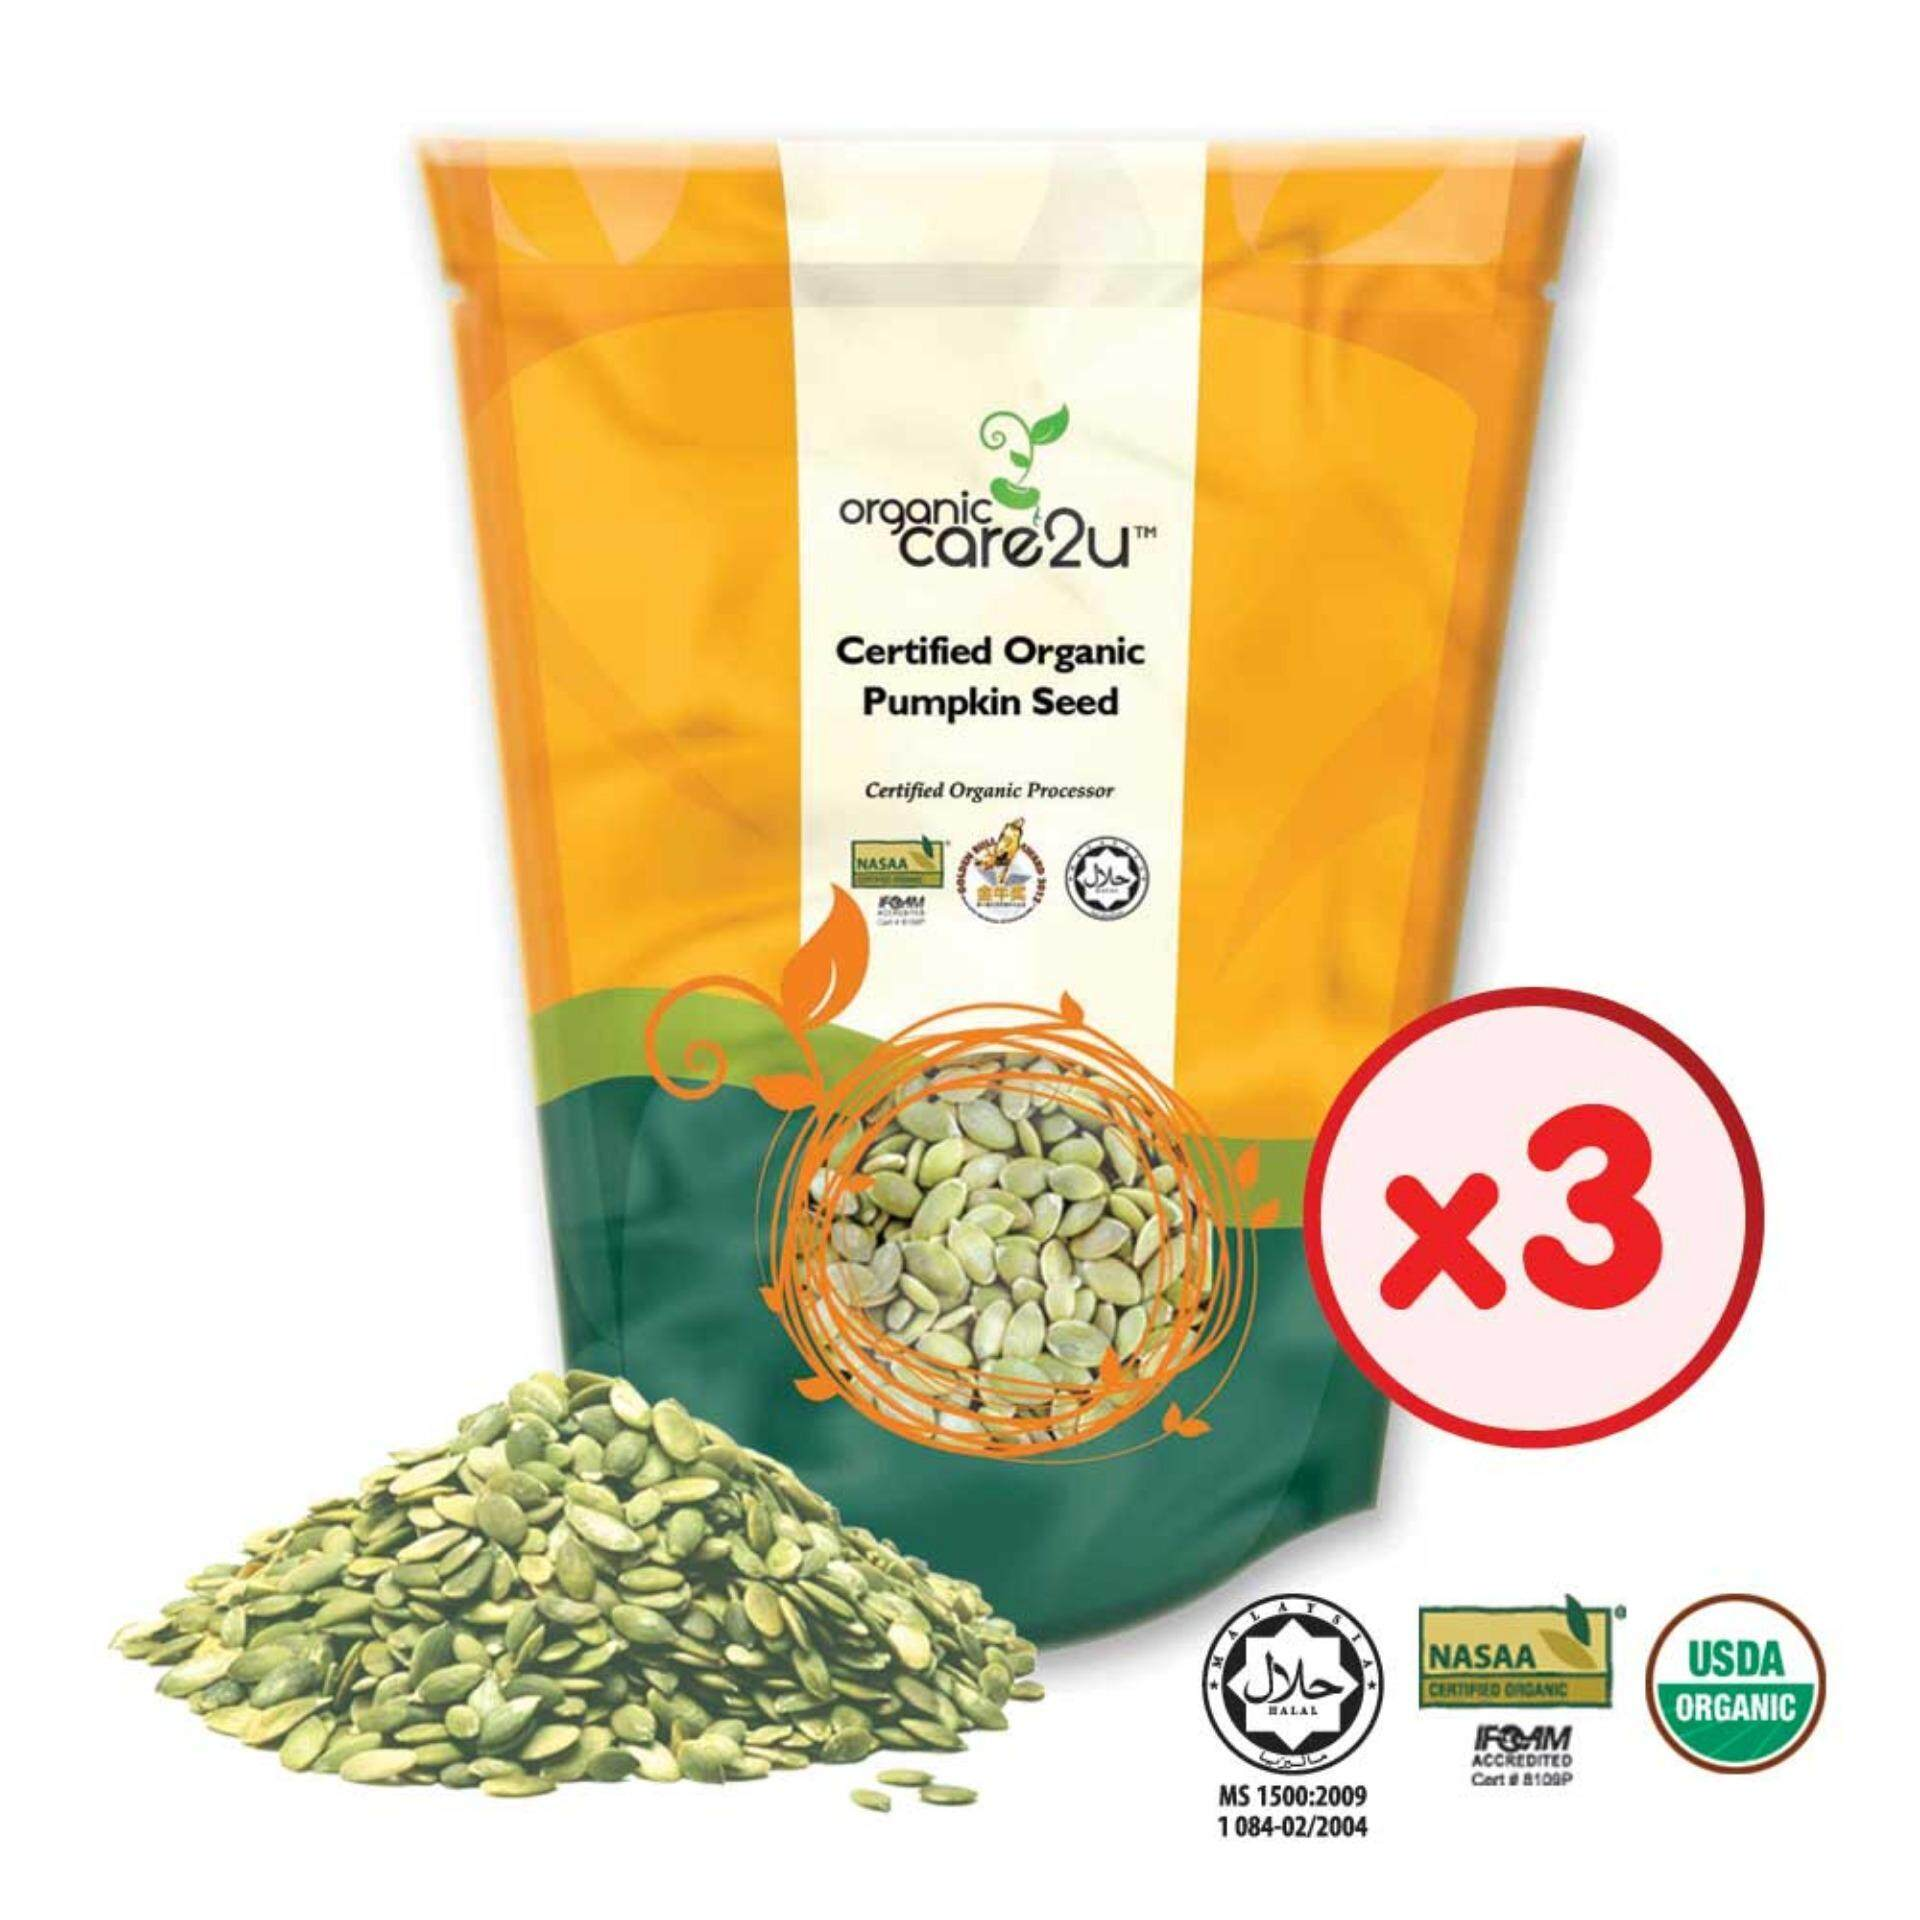 Organic Care2u Organic Pumpkin Seed (180g) - [Bundle of 3]